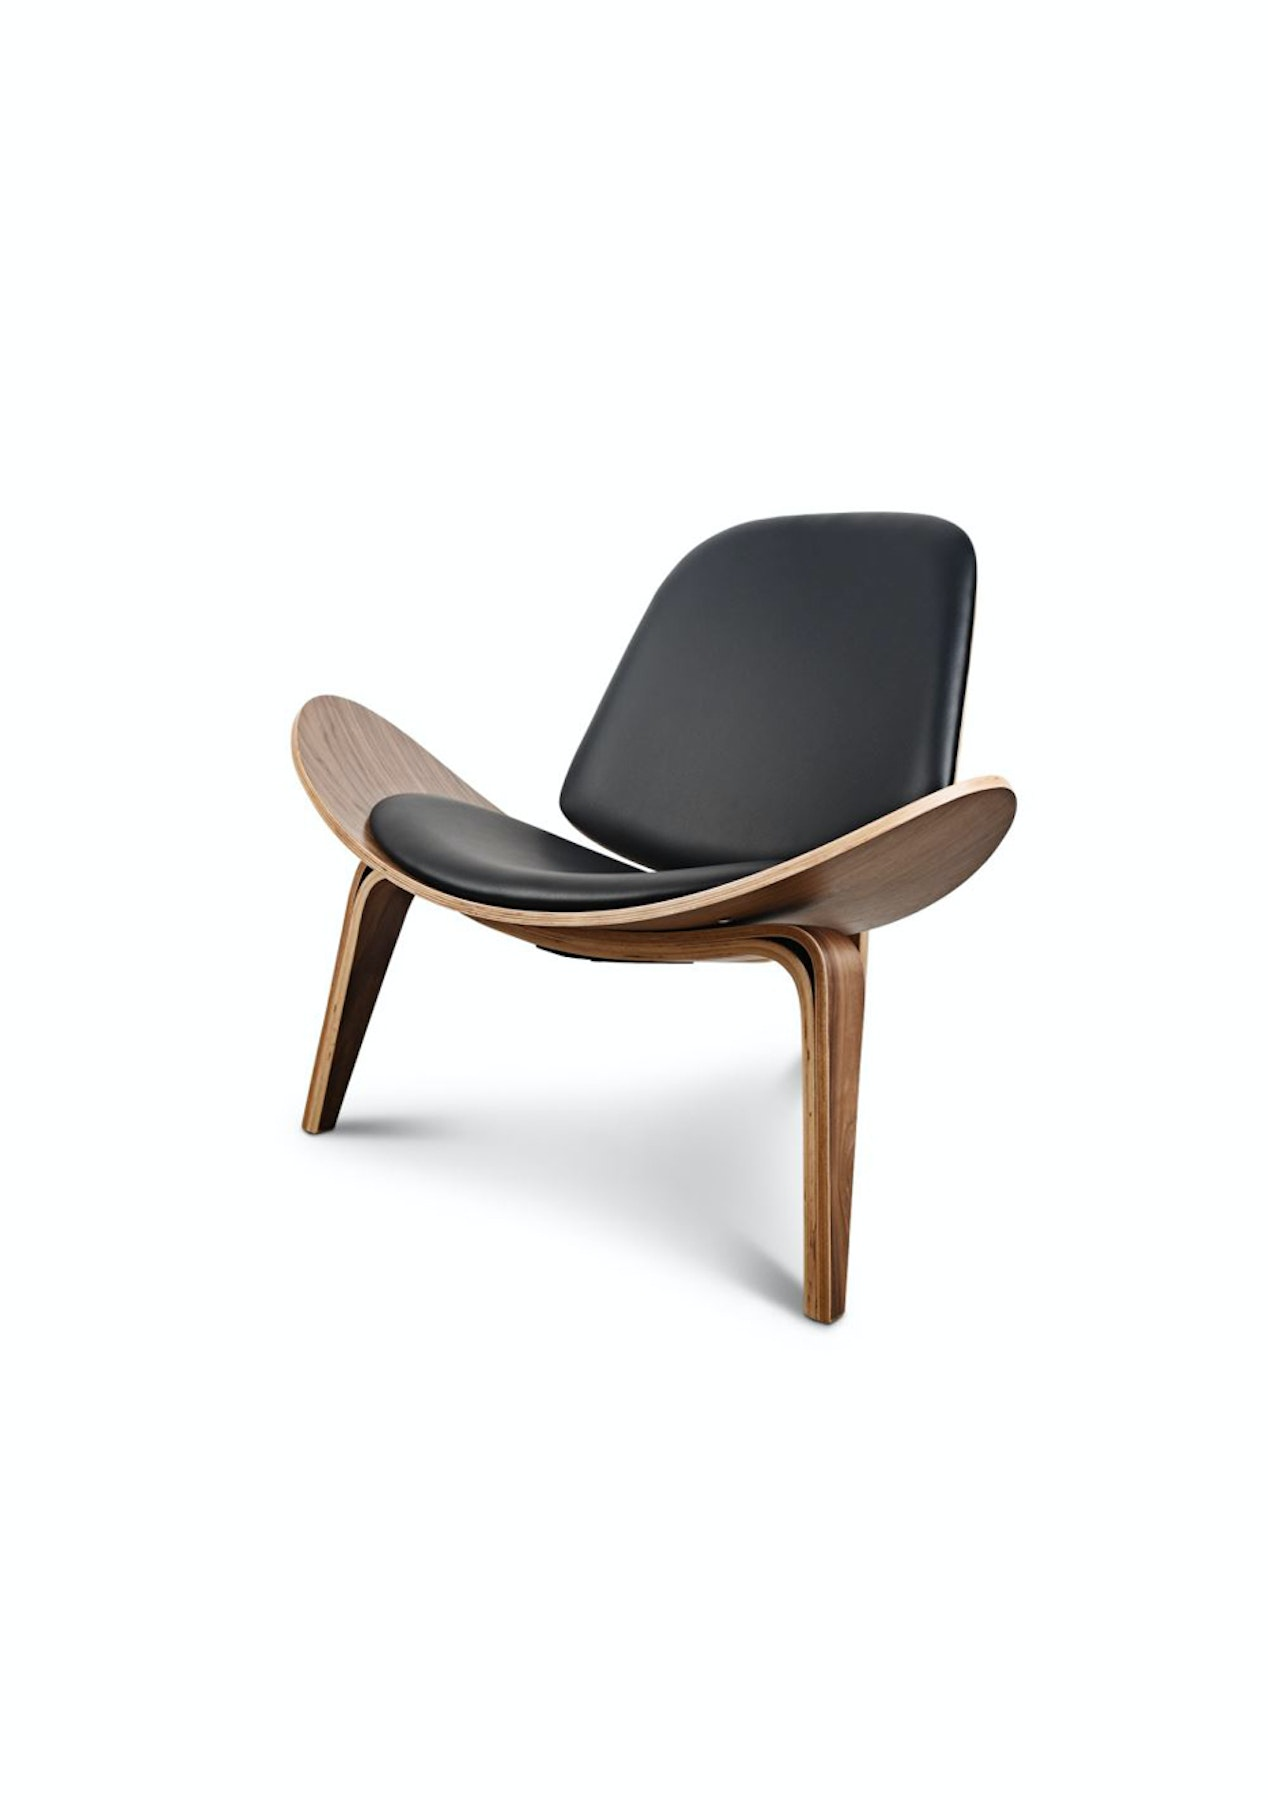 Replica designer shell occasional chair black big for Reproduction designer furniture